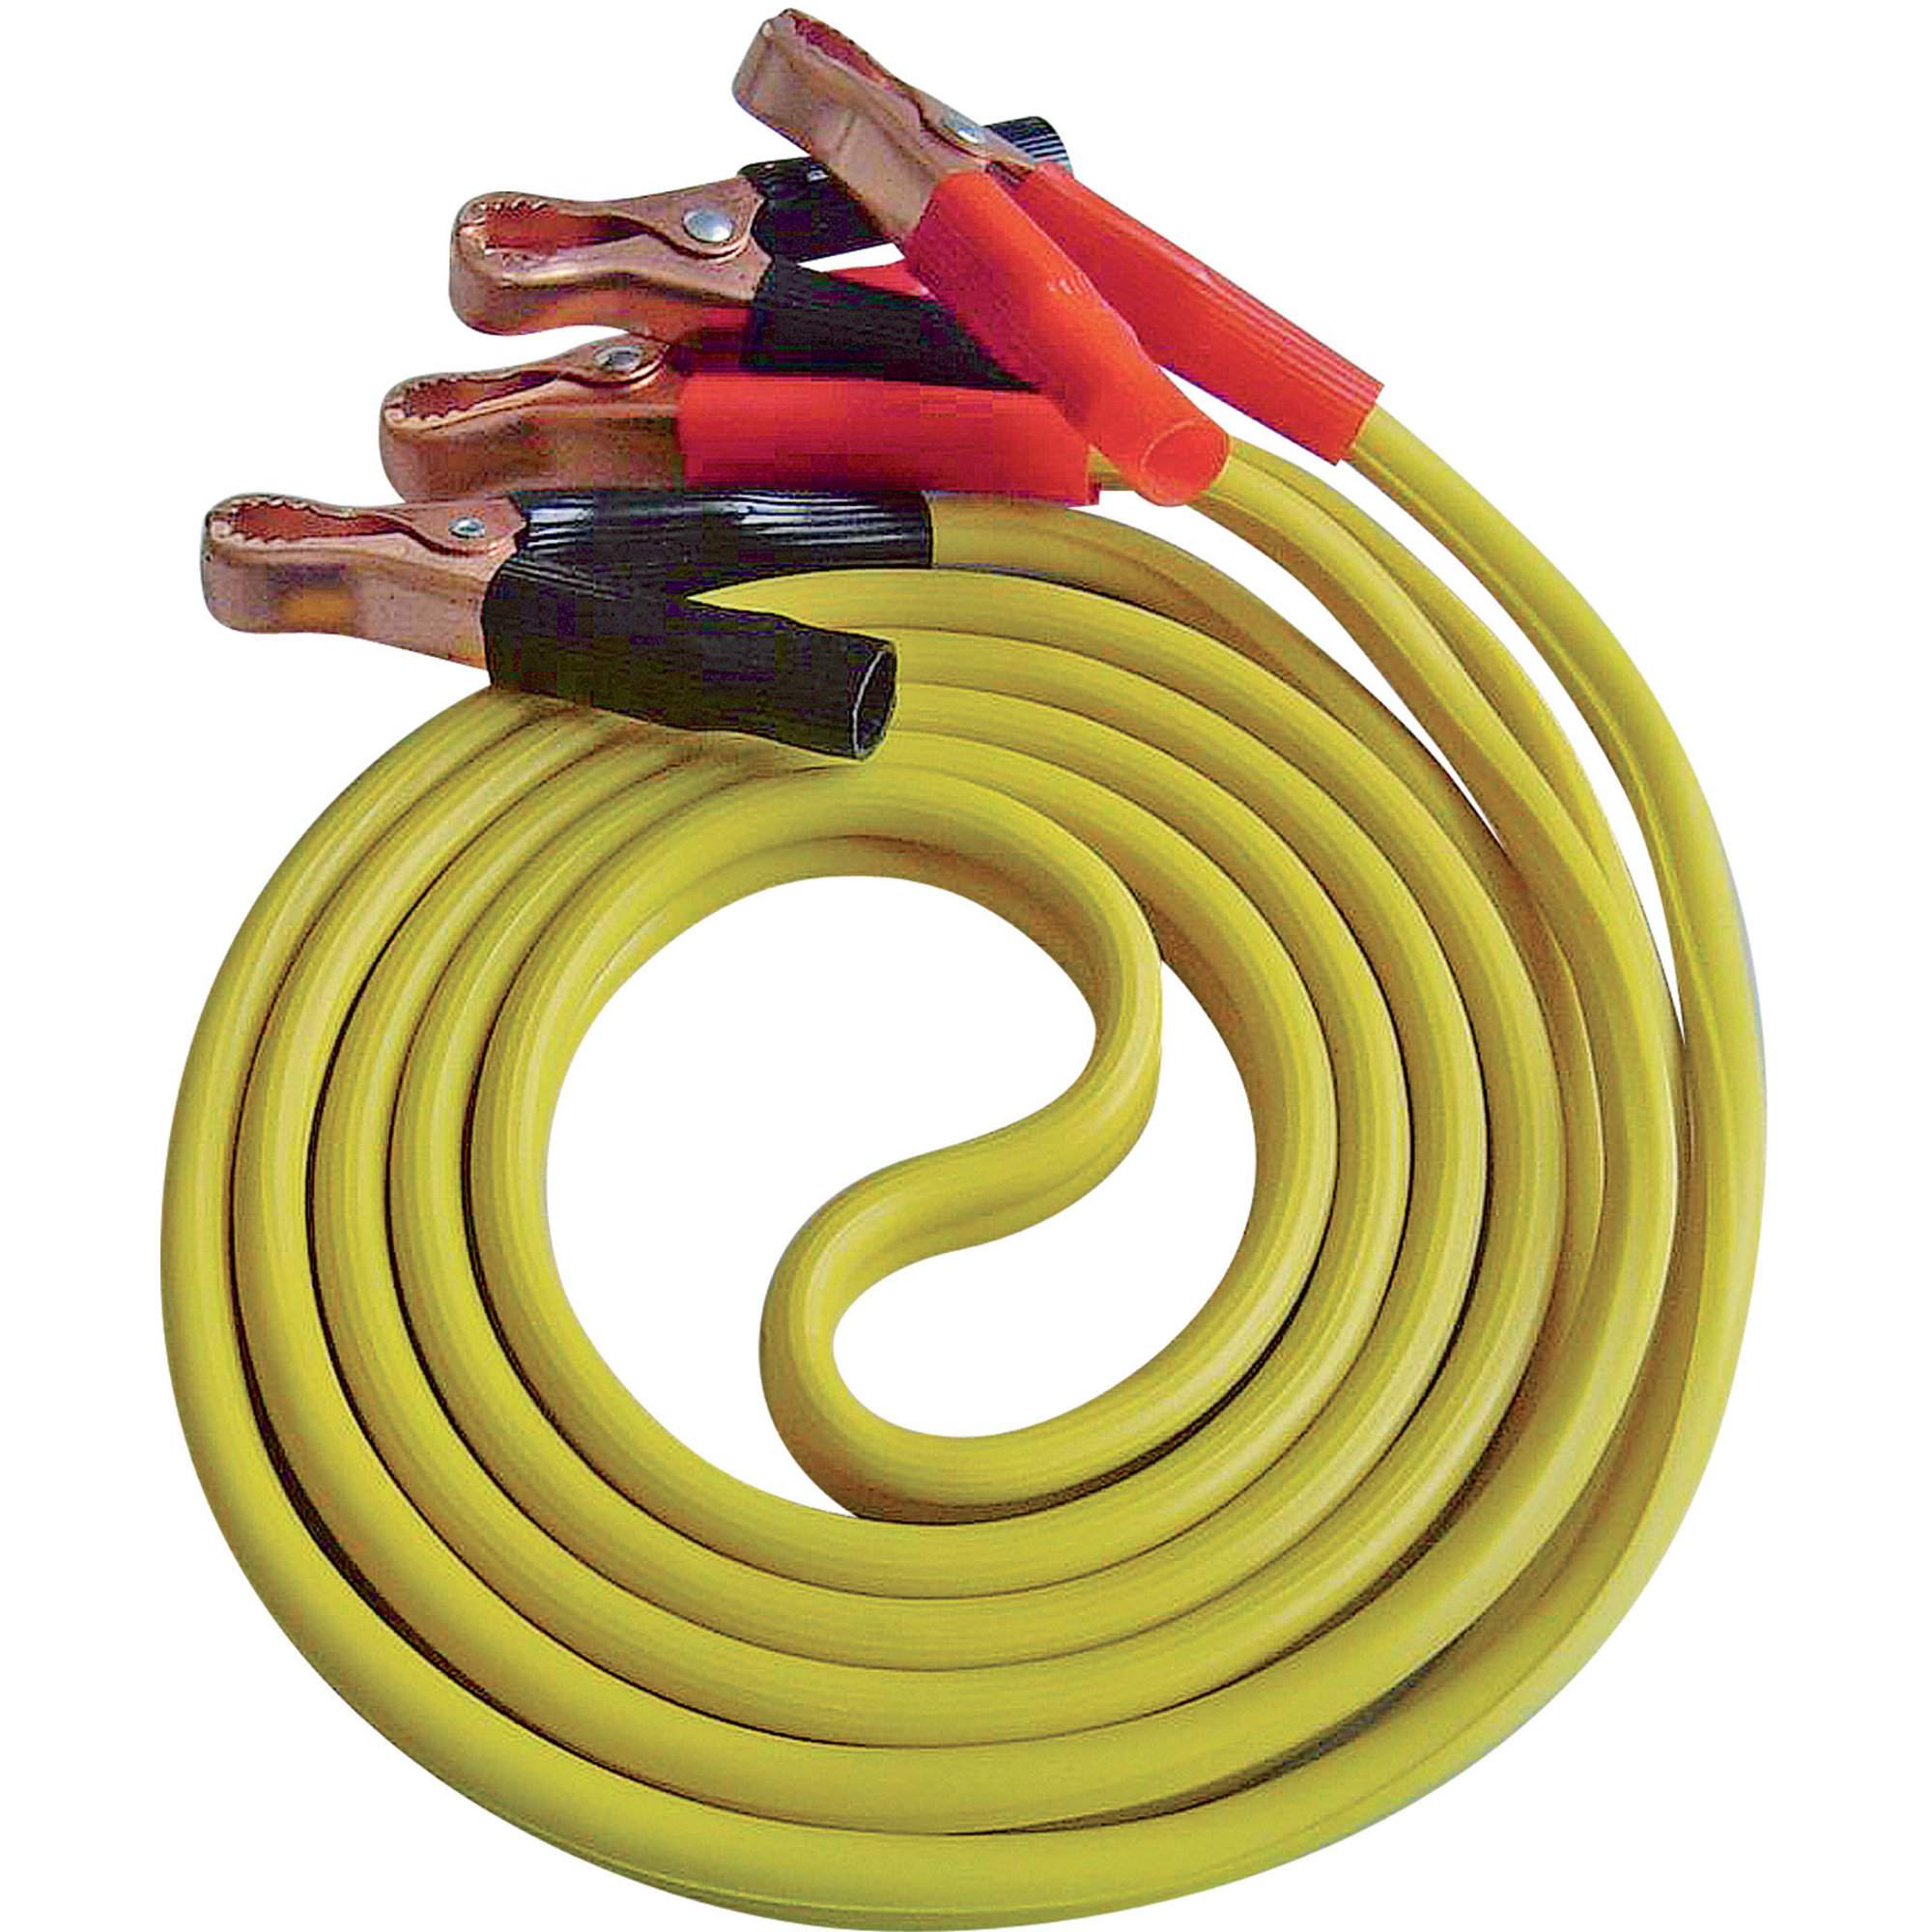 Jumper Booster Cables Northern Tool Equipment 20 Ft Feet 4 Gauge Red Power Wire Cable Best Quality 3 Top Seller Advantage Exclusive Ironton 10ft 10 Ga